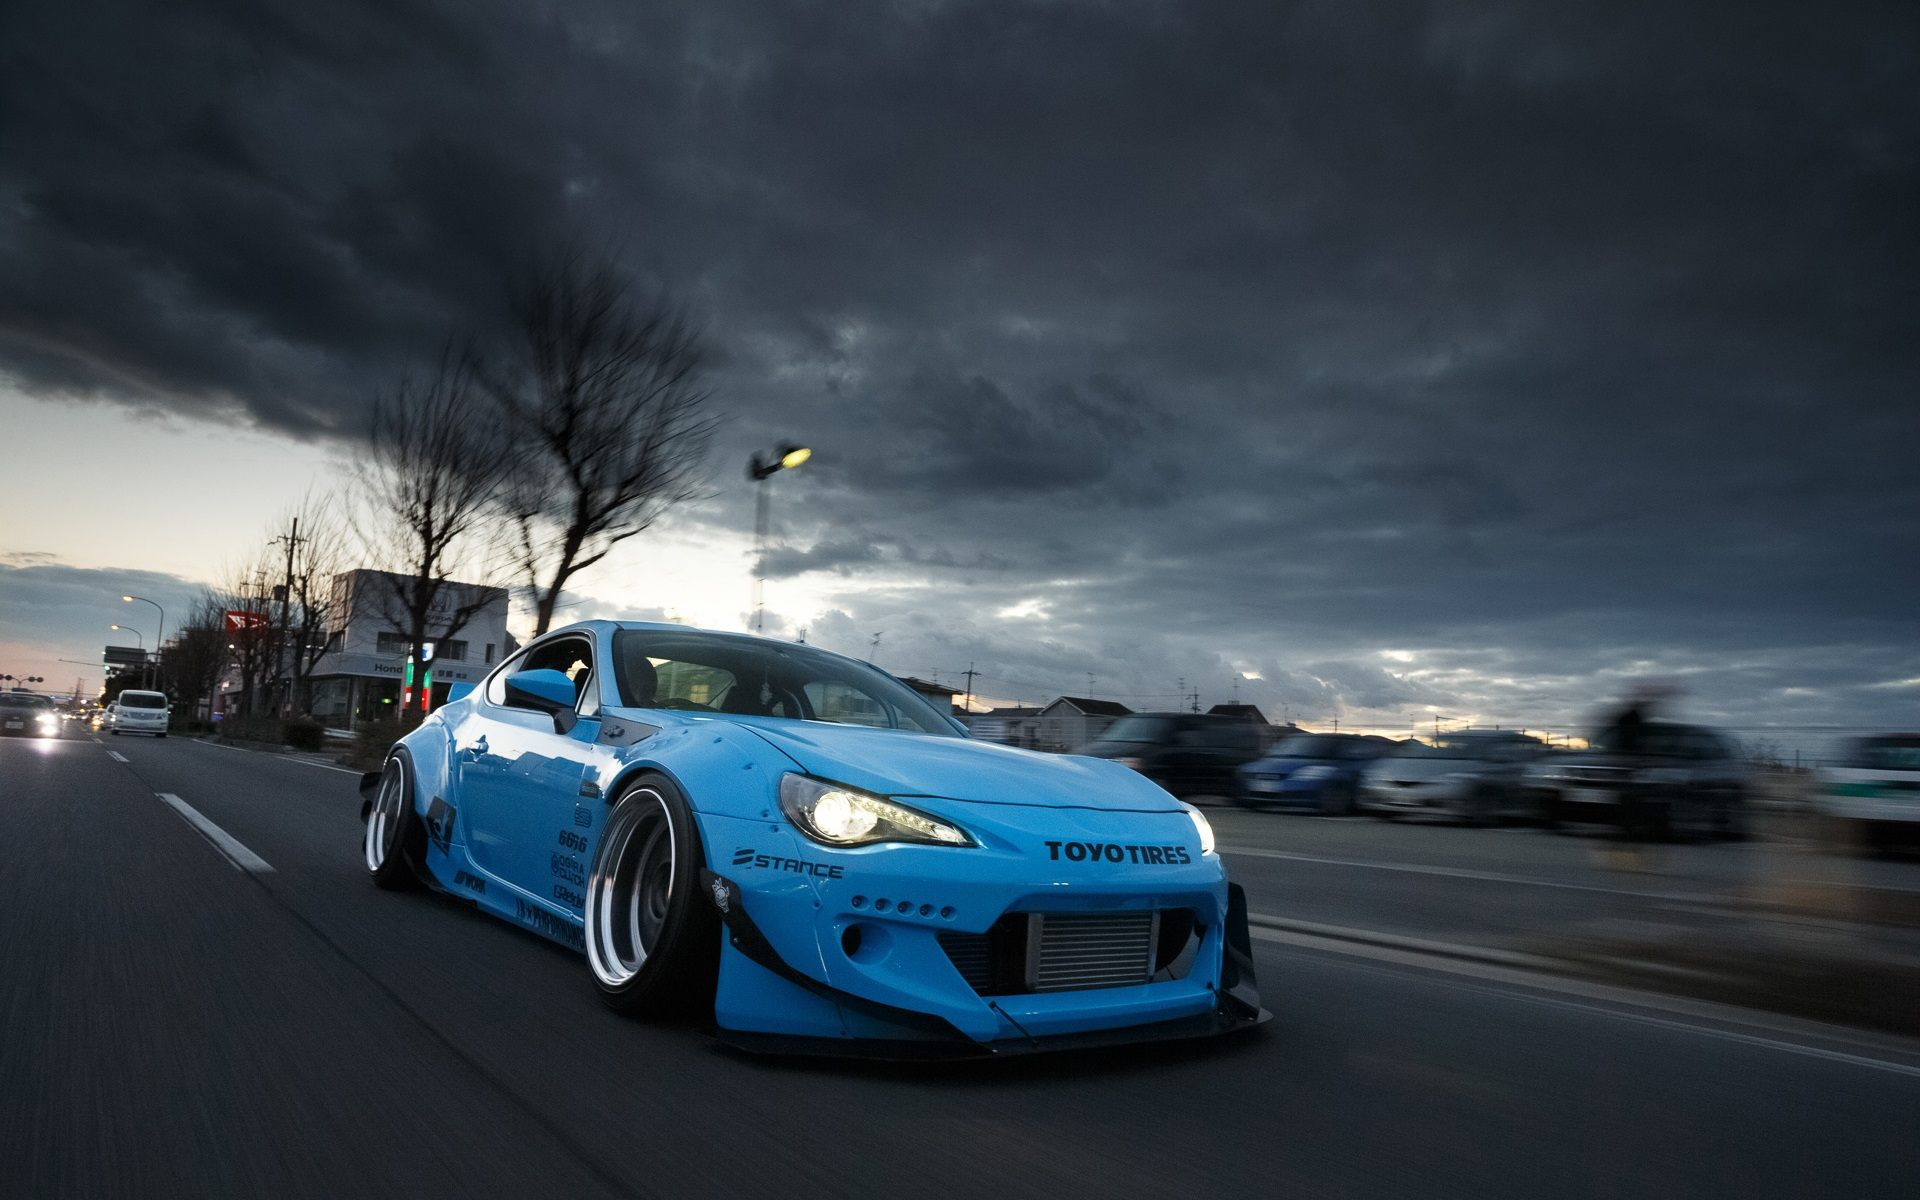 86 Brz Frs Rocket Bunny Wallpaper